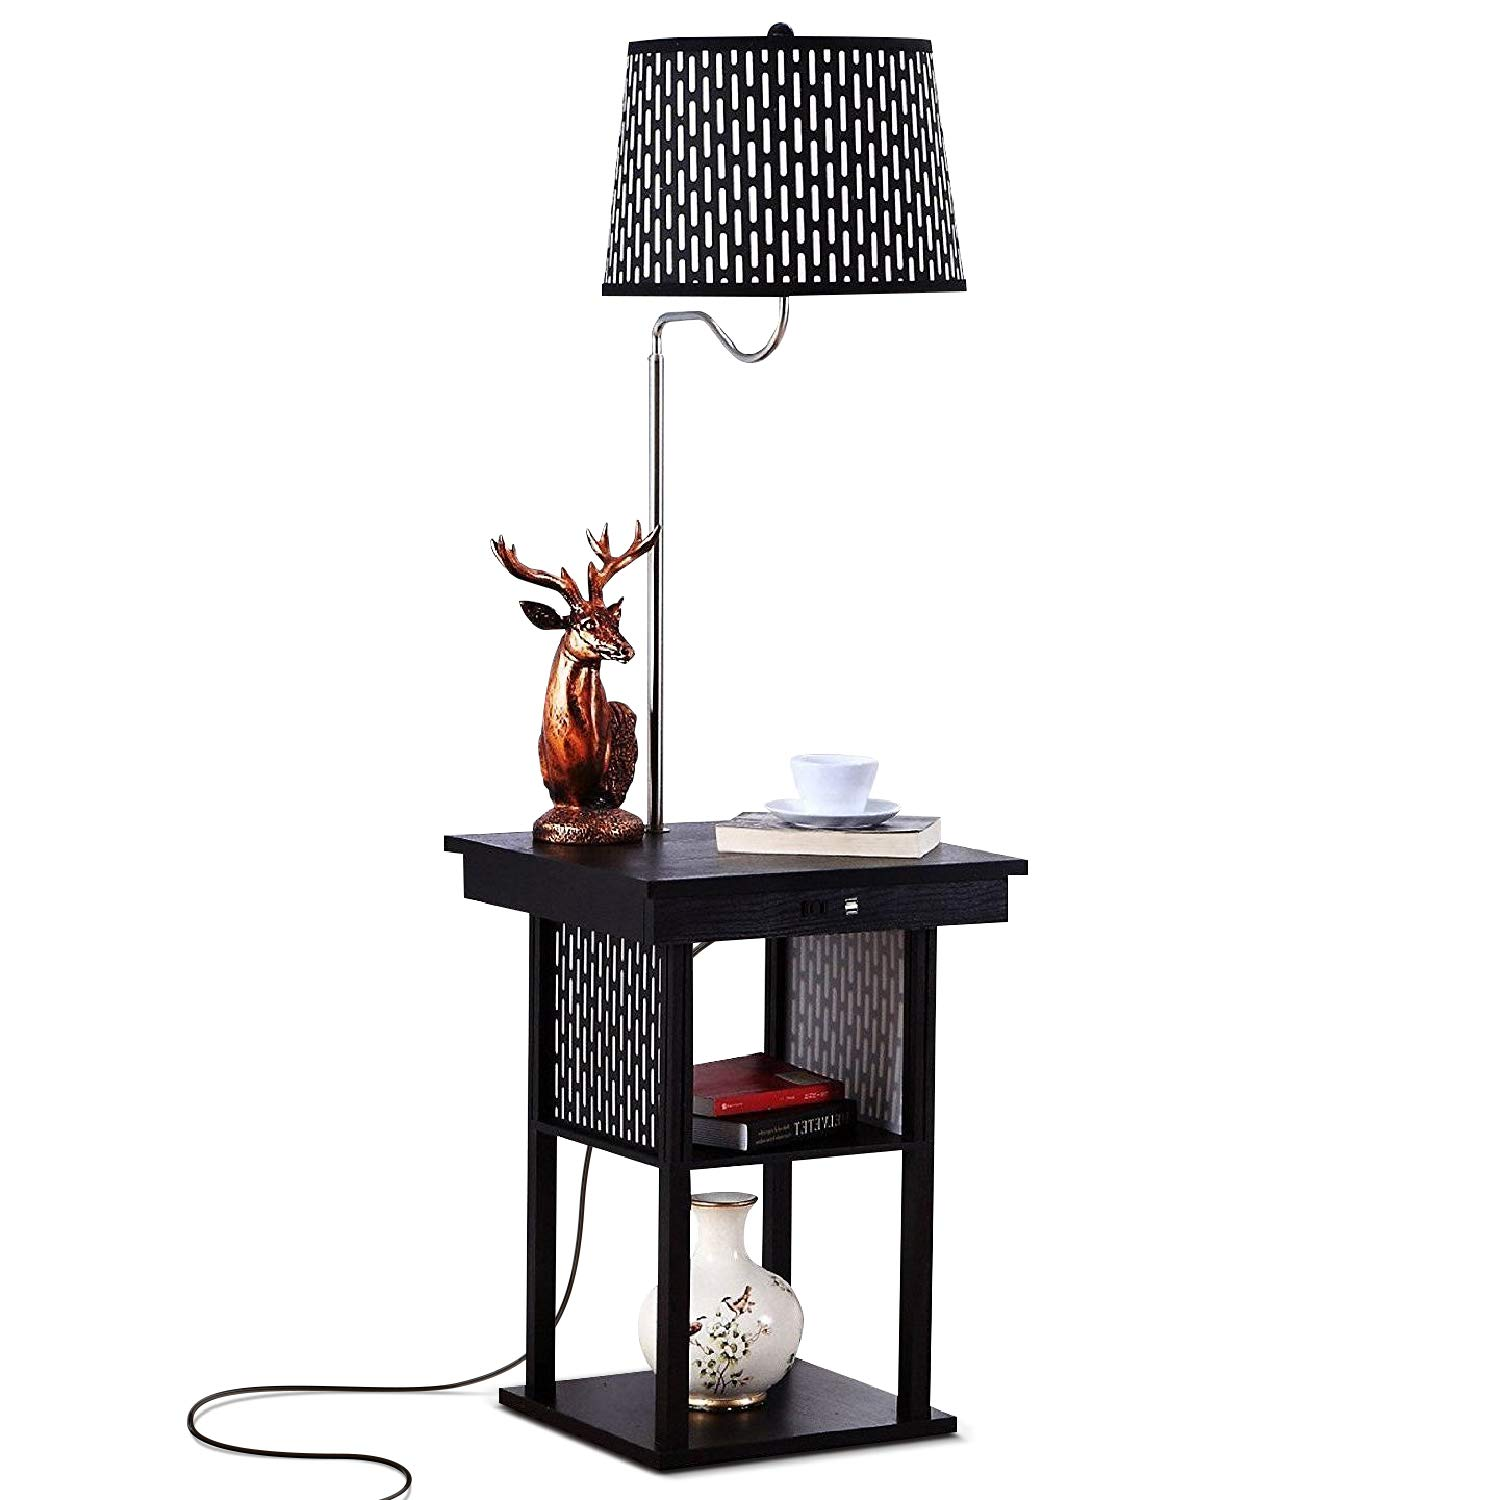 brightech madison led floor lamp with usb charging end table combo ports mid century modern bedside nighstand shelves for living room sofas roddington ashley furniture outdoor